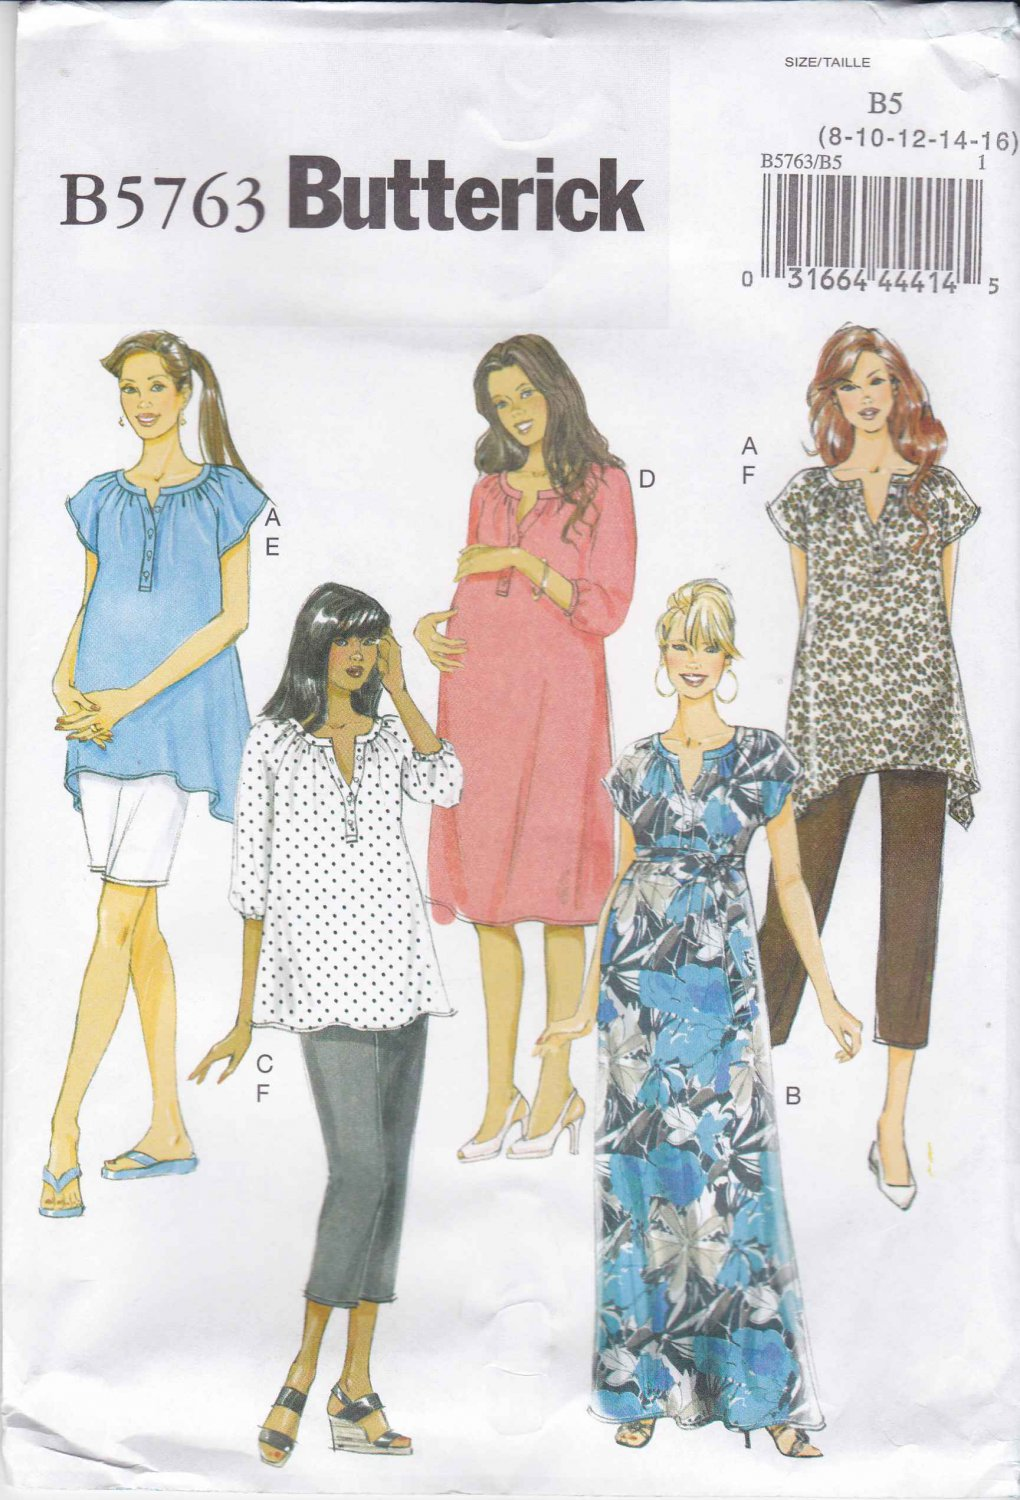 Butterick Sewing Pattern 5763 B5763 Misses Size 8-16 Easy Maternity Wardrobe Top Dress Pants